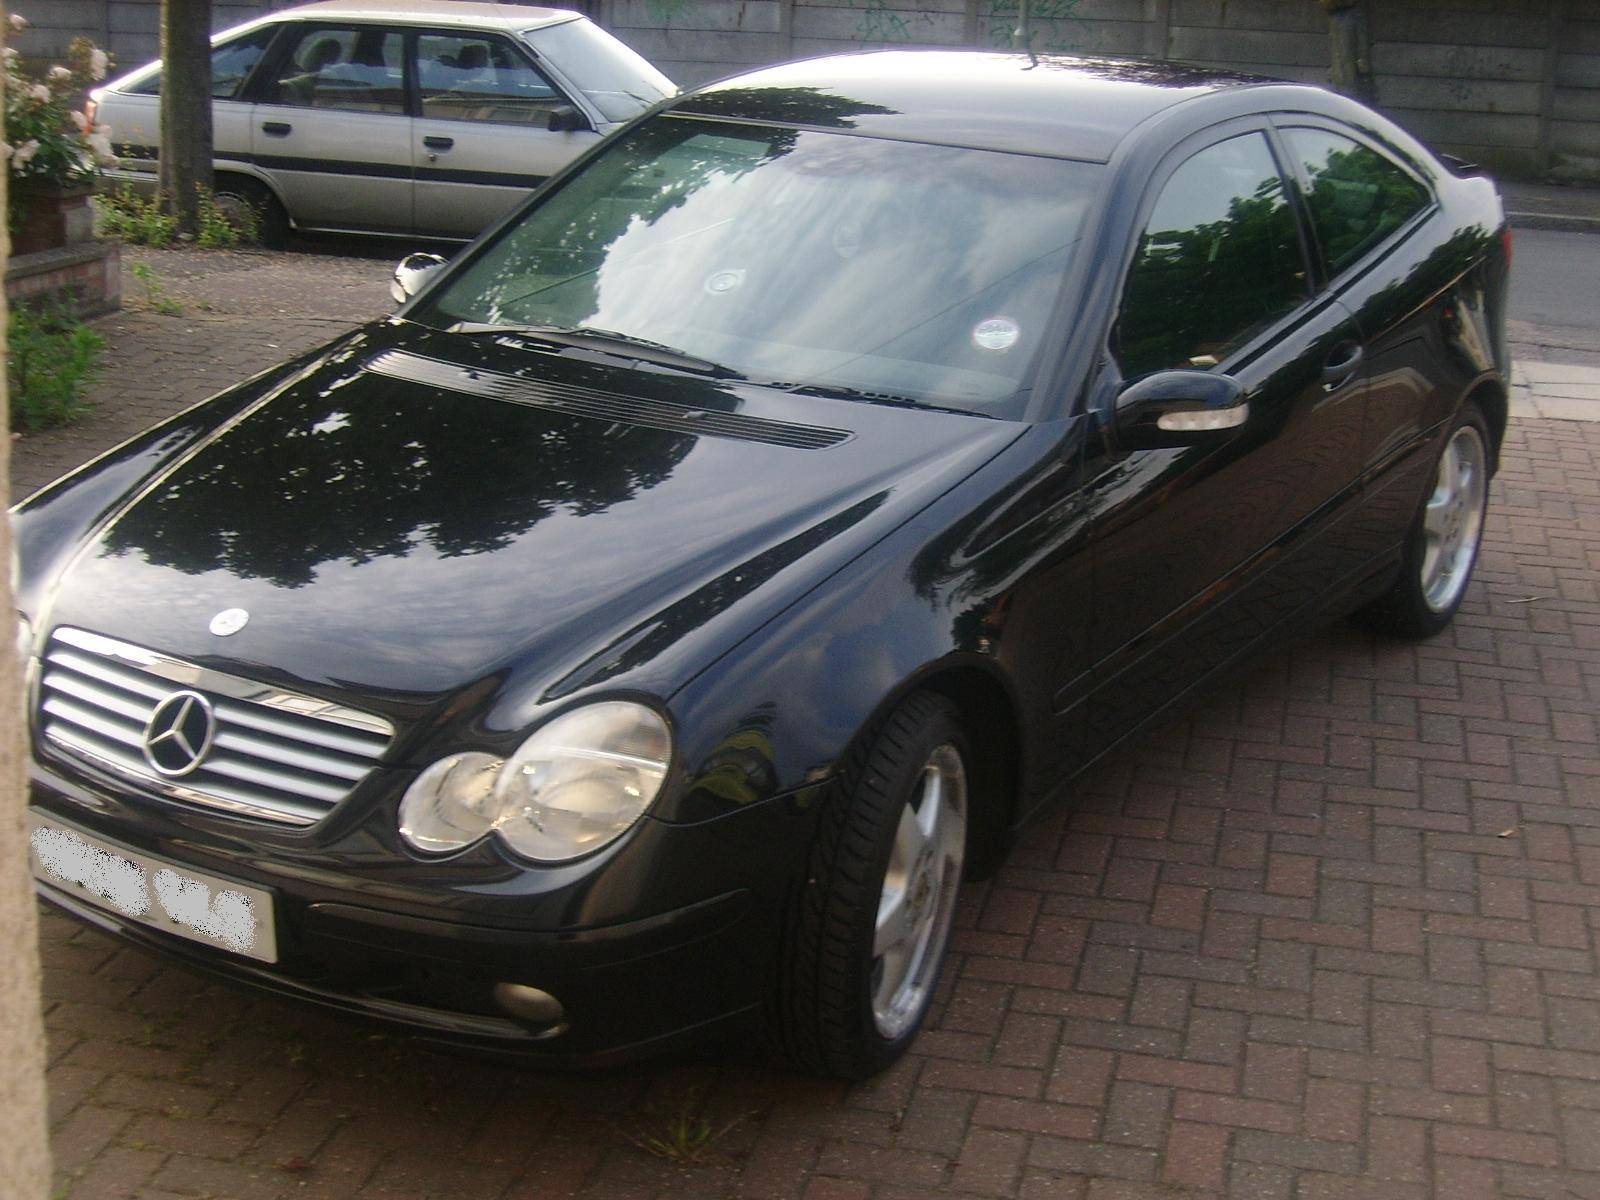 2002 Mercedes-Benz C-Class - Other Pictures - CarGurus